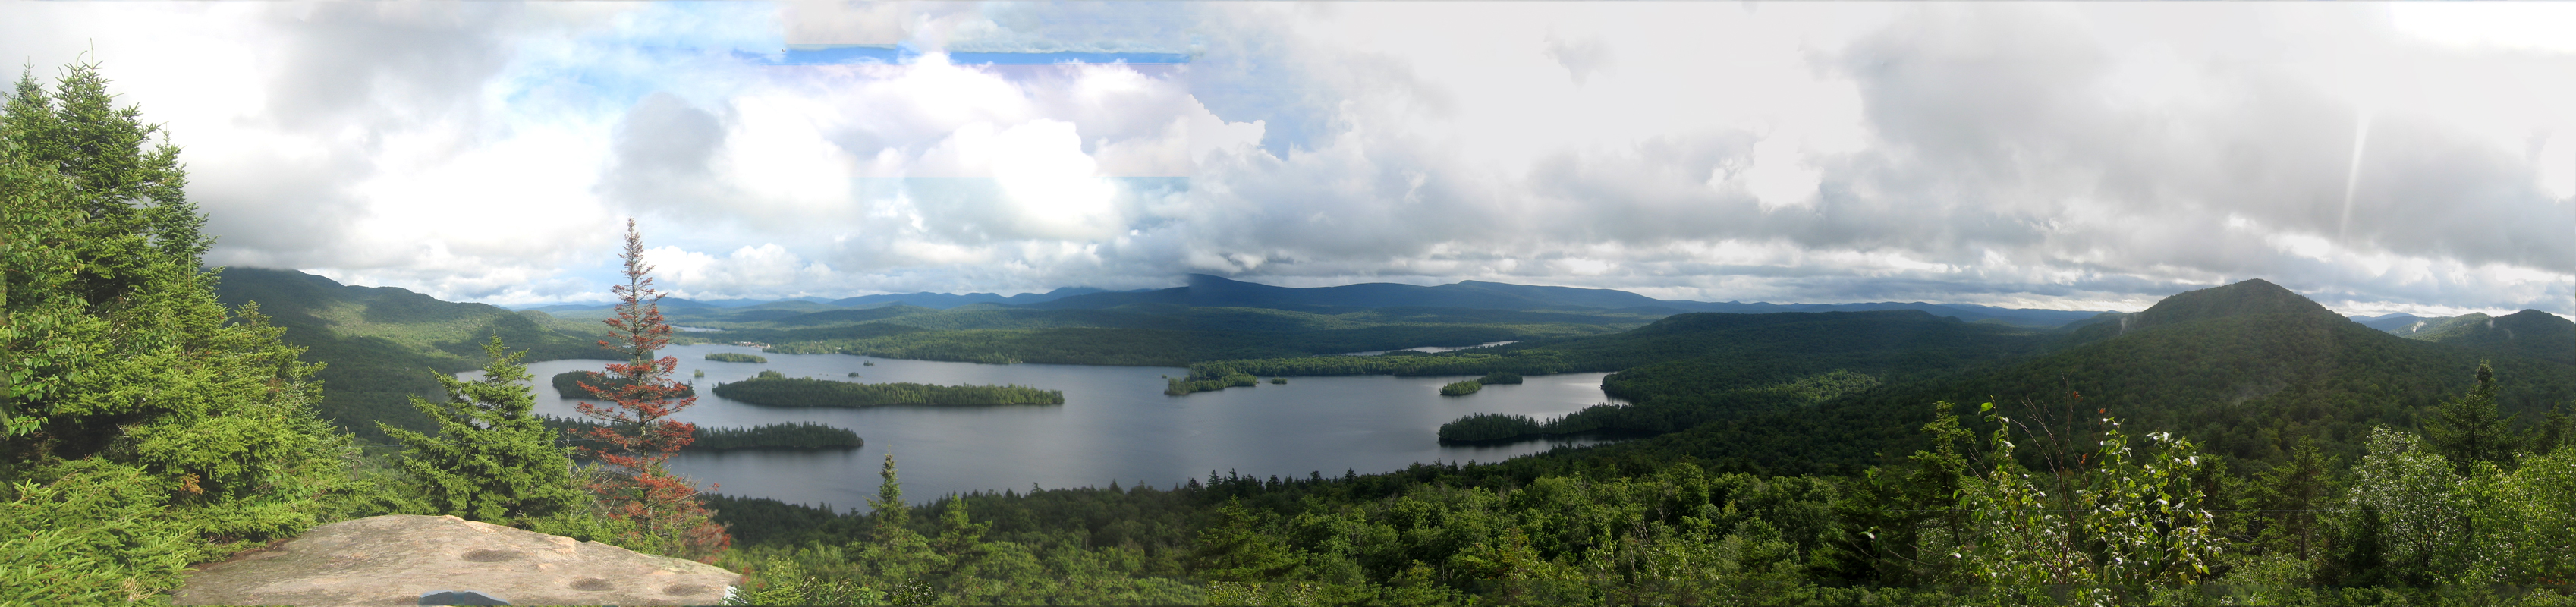 Castle Rock Panoramic View